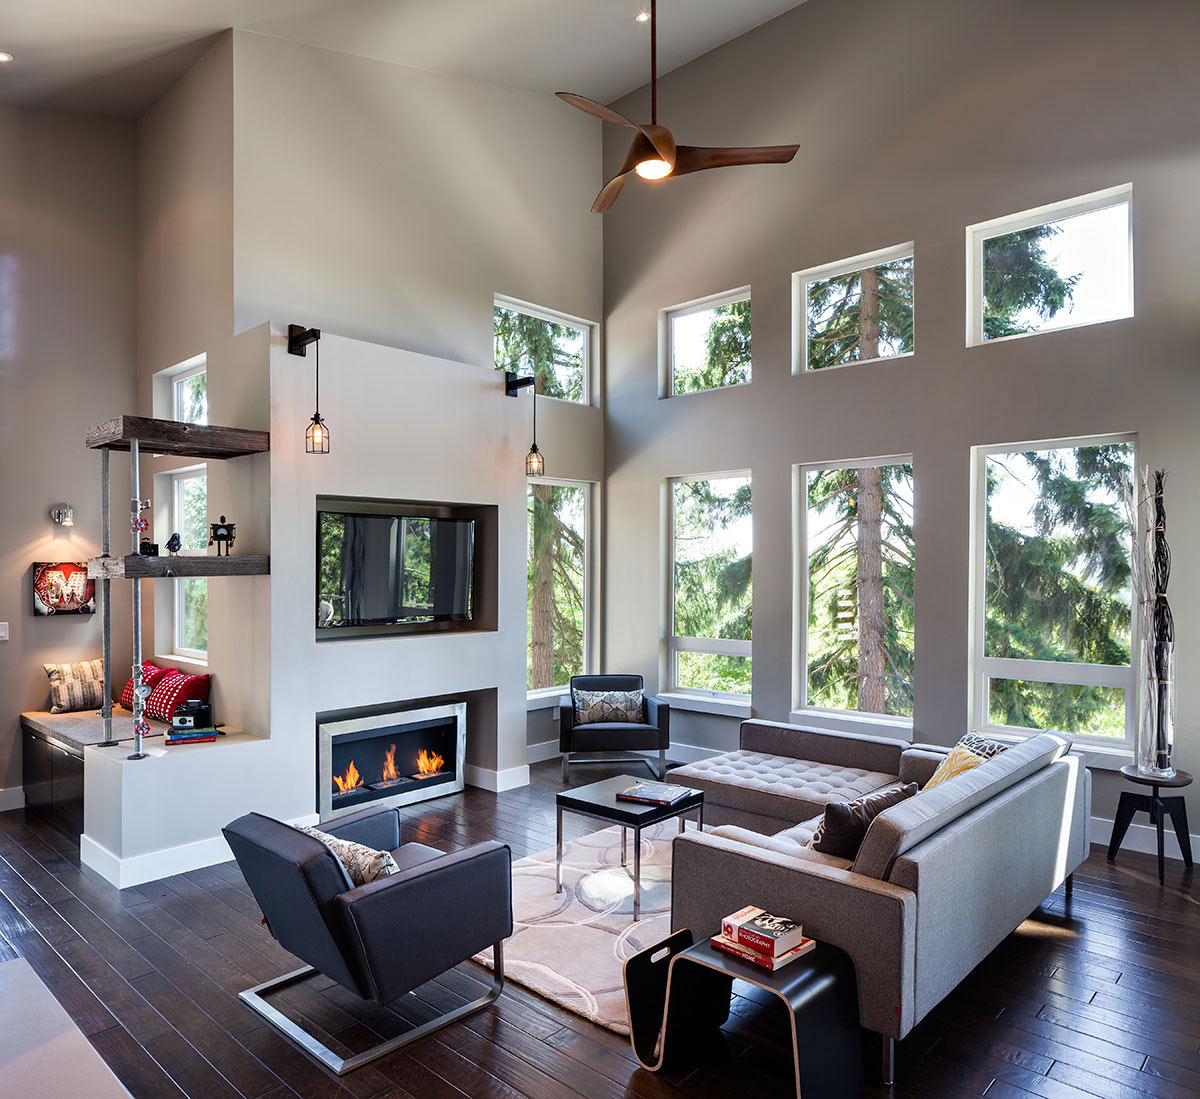 Fireplace, Sofas, Living Space, Modern Home in Eugene, Oregon by Jordan Iverson Signature Homes